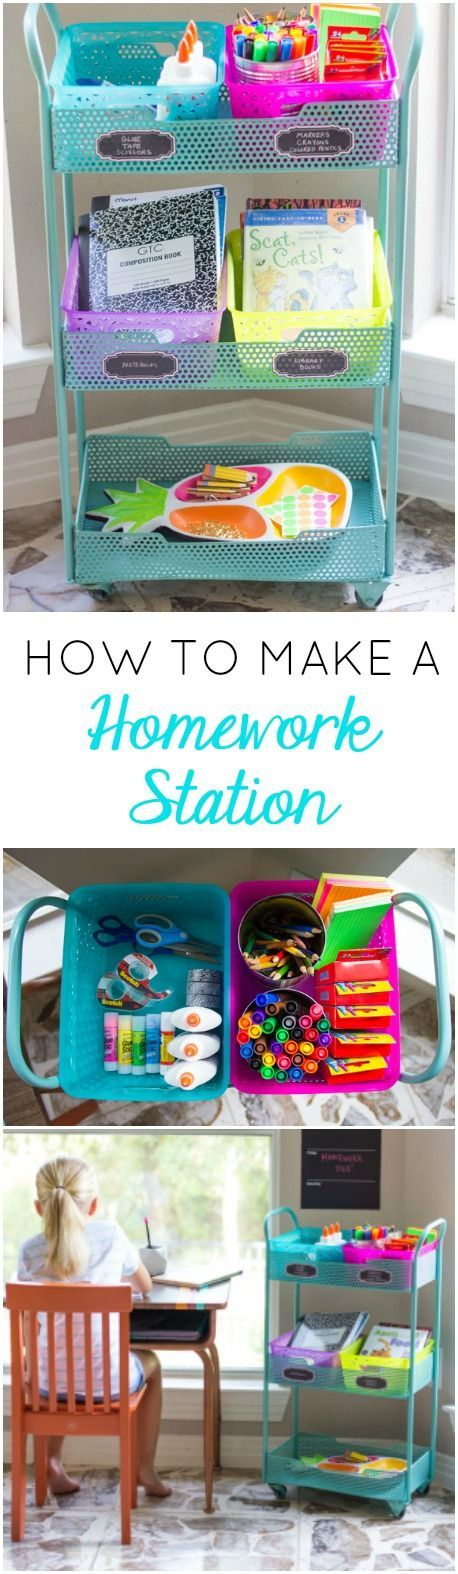 Turn a cart into a DIY homework station - so handy!